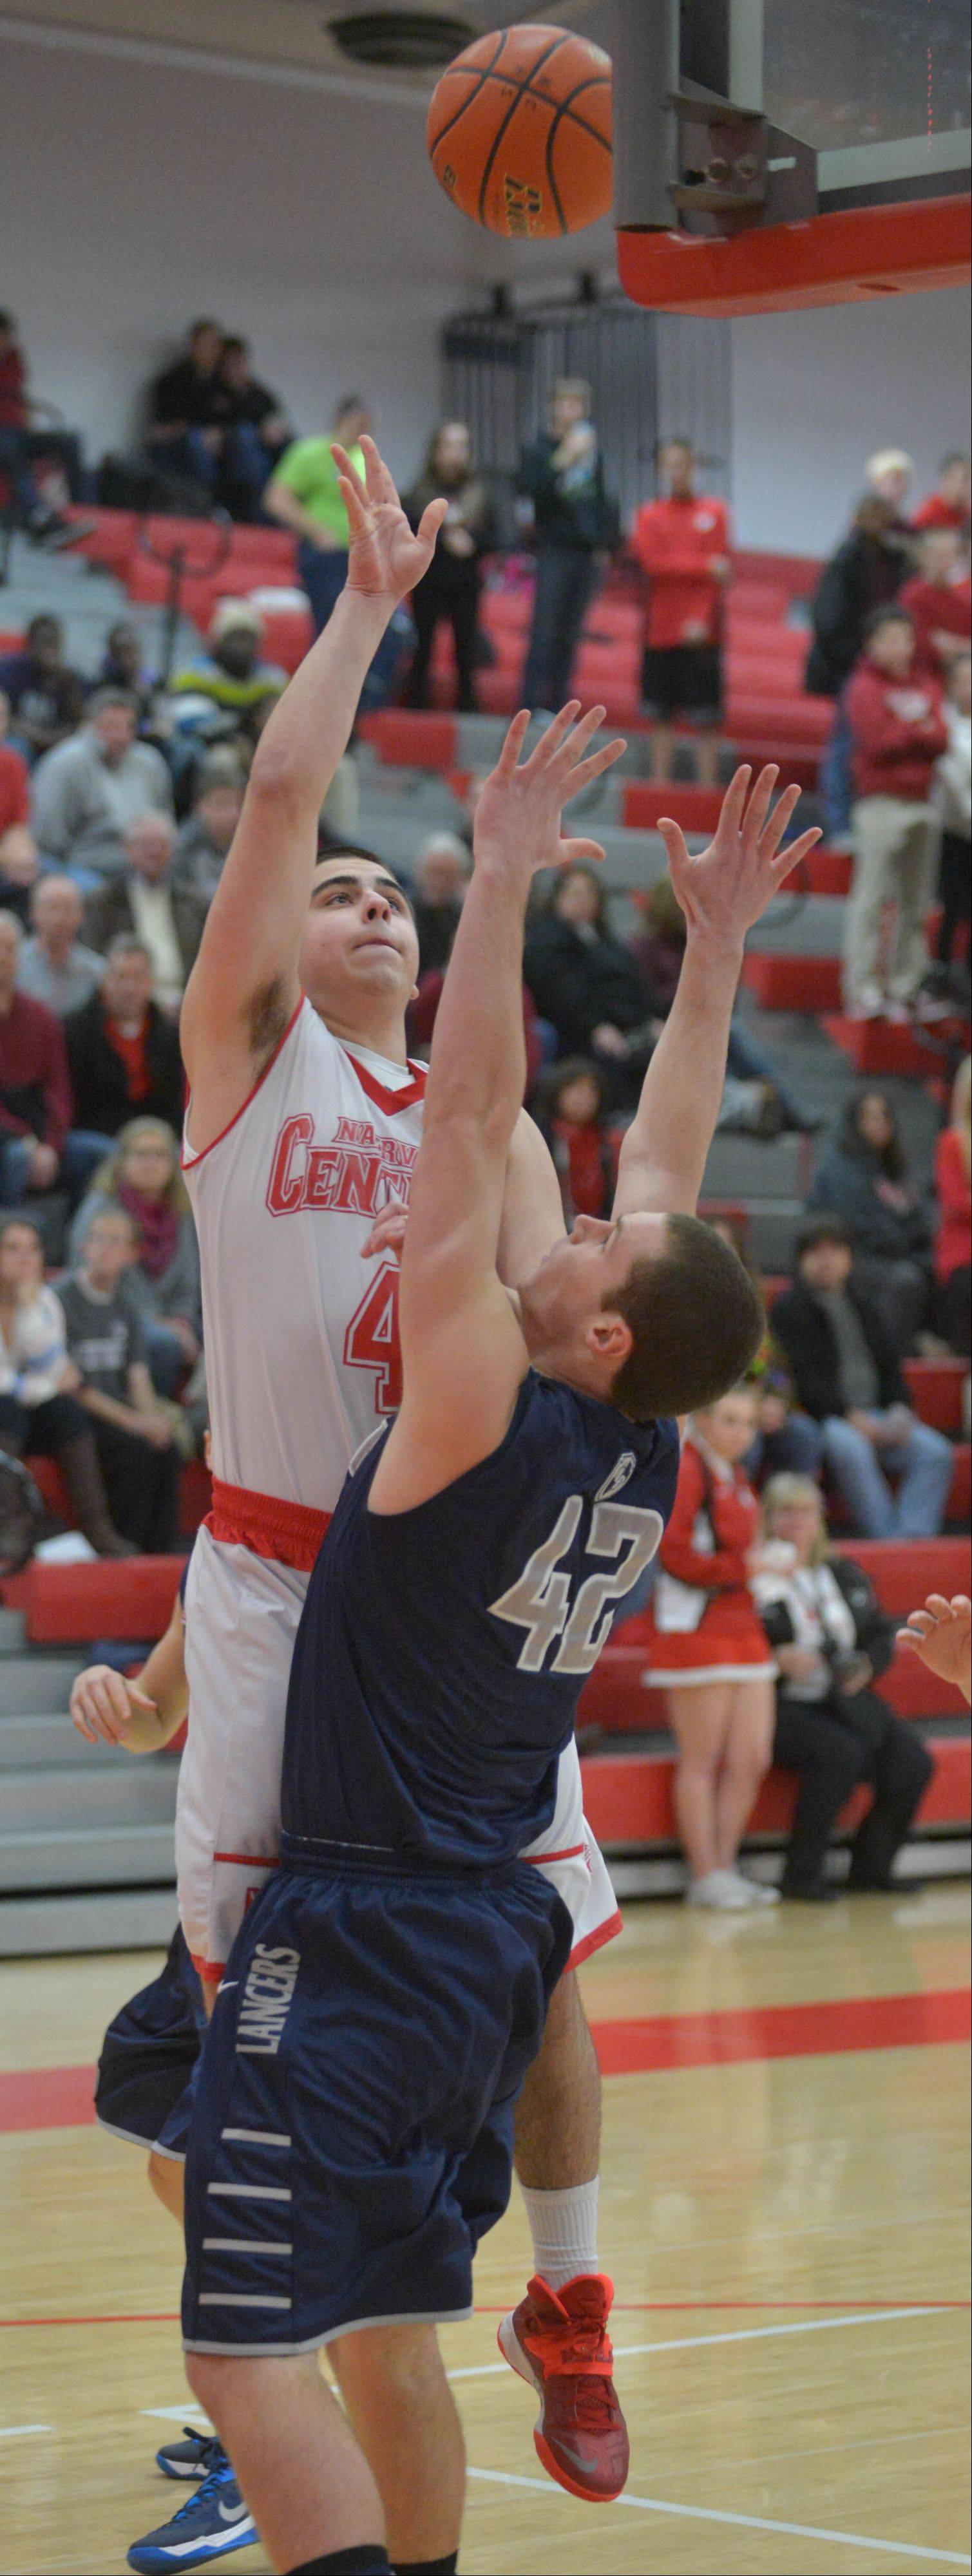 Ryan Antony of Napervile Central takes a shot over John Hower of Lake Park puts up a shot during the Lake Park at Naperville Central boys basketball game Friday.